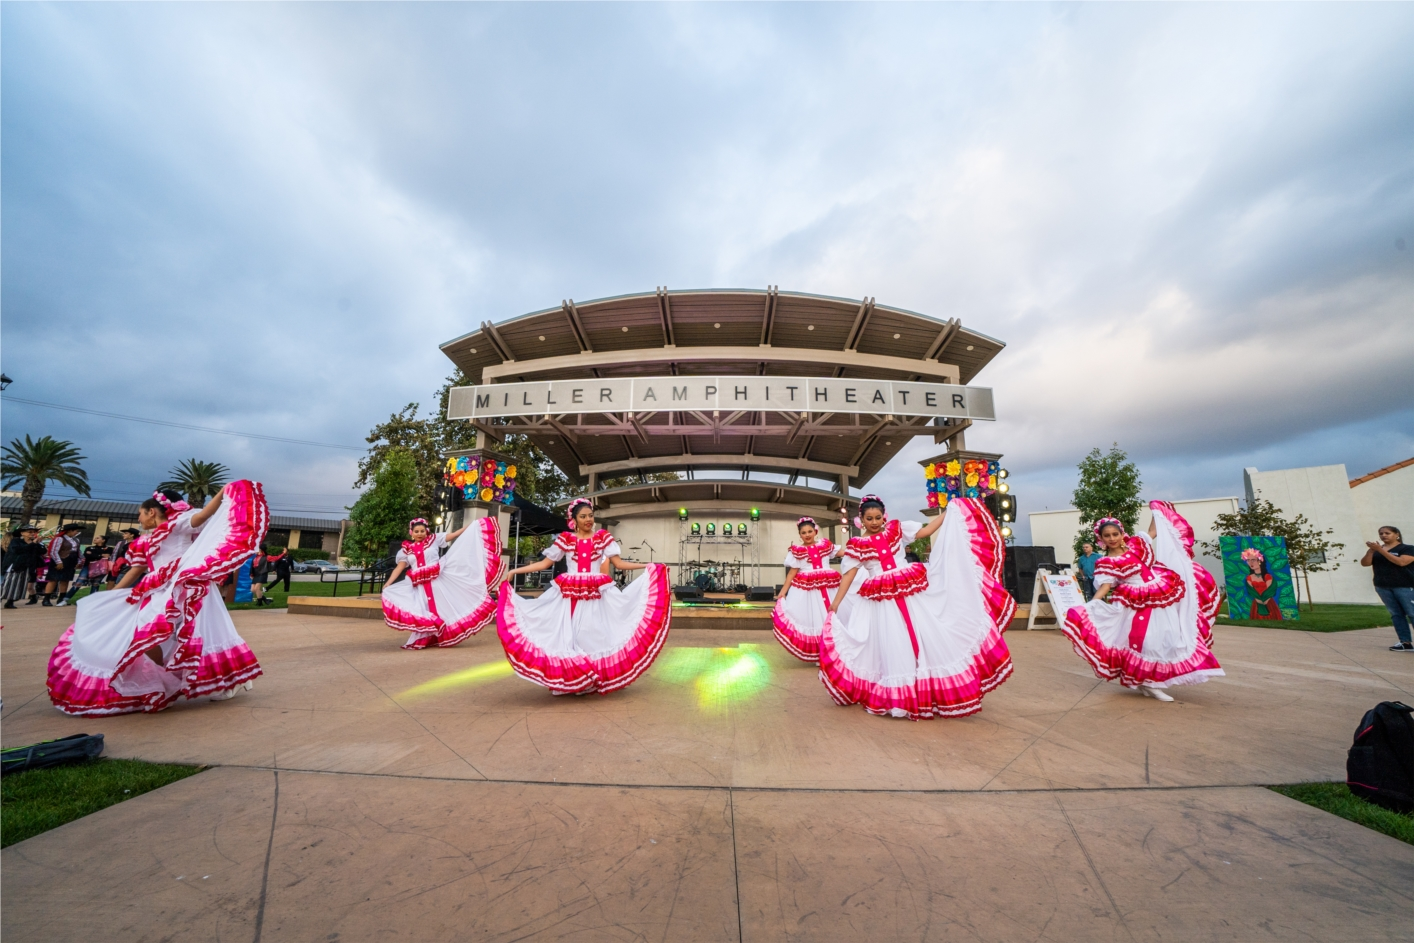 Dancers perform in front of the Miller Amphitheater during Fontana's annual La Gran Fiesta in honor of Hispanic Heritage Month.